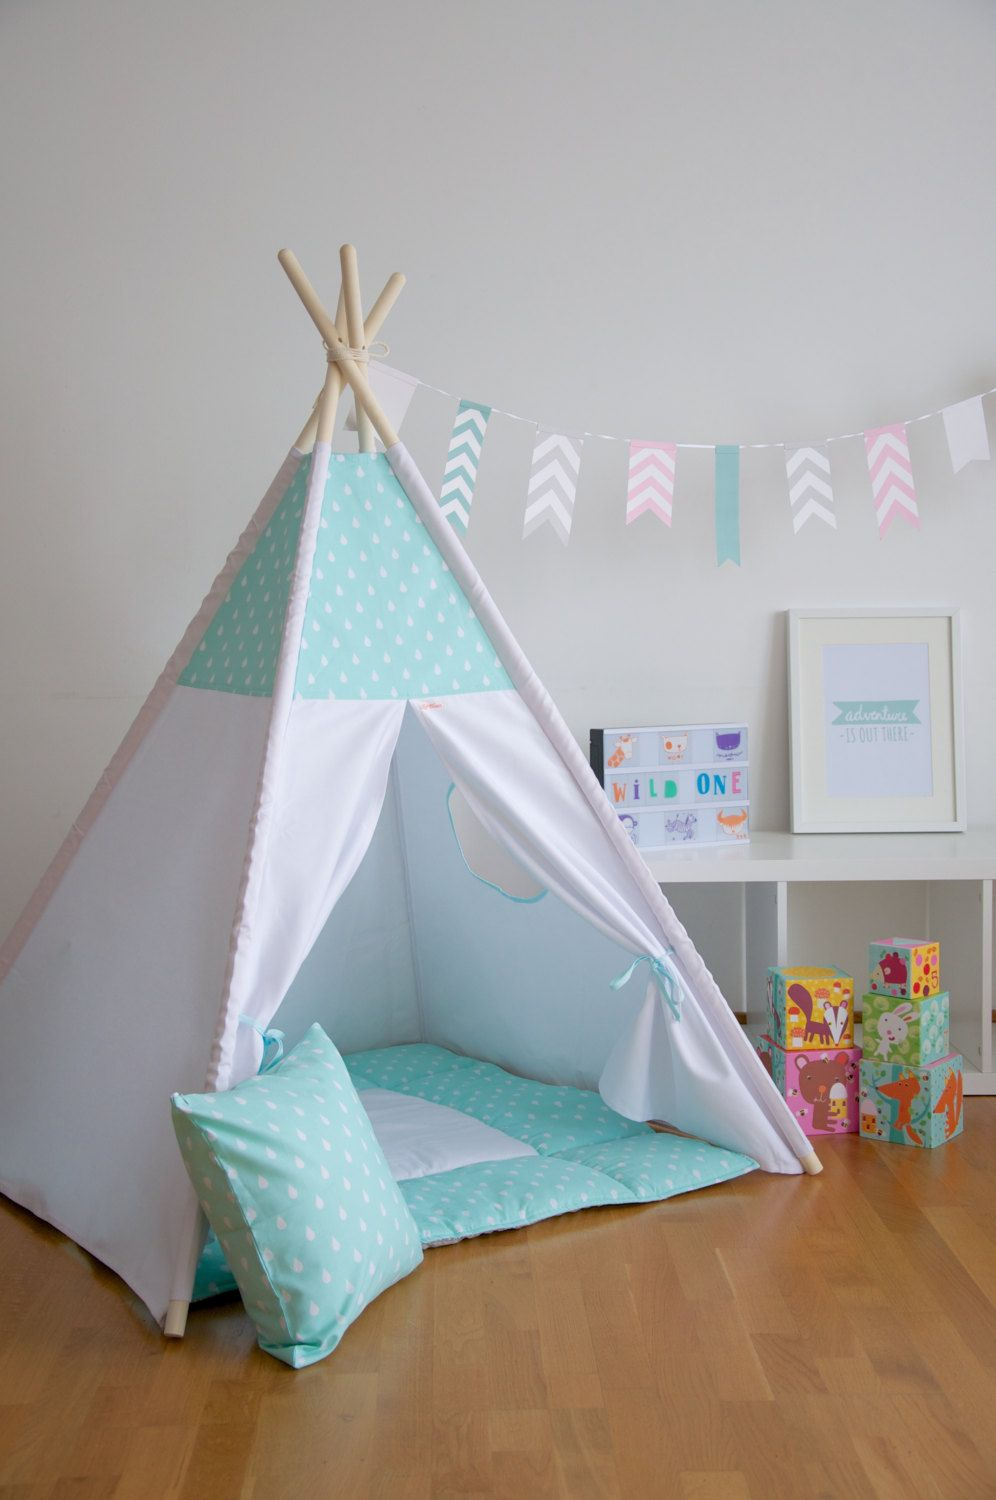 Mint drops kids teepee play tent with a padded floor mat by WigiWama on Etsy & Mint drops kids teepee play tent with a padded floor mat by ...